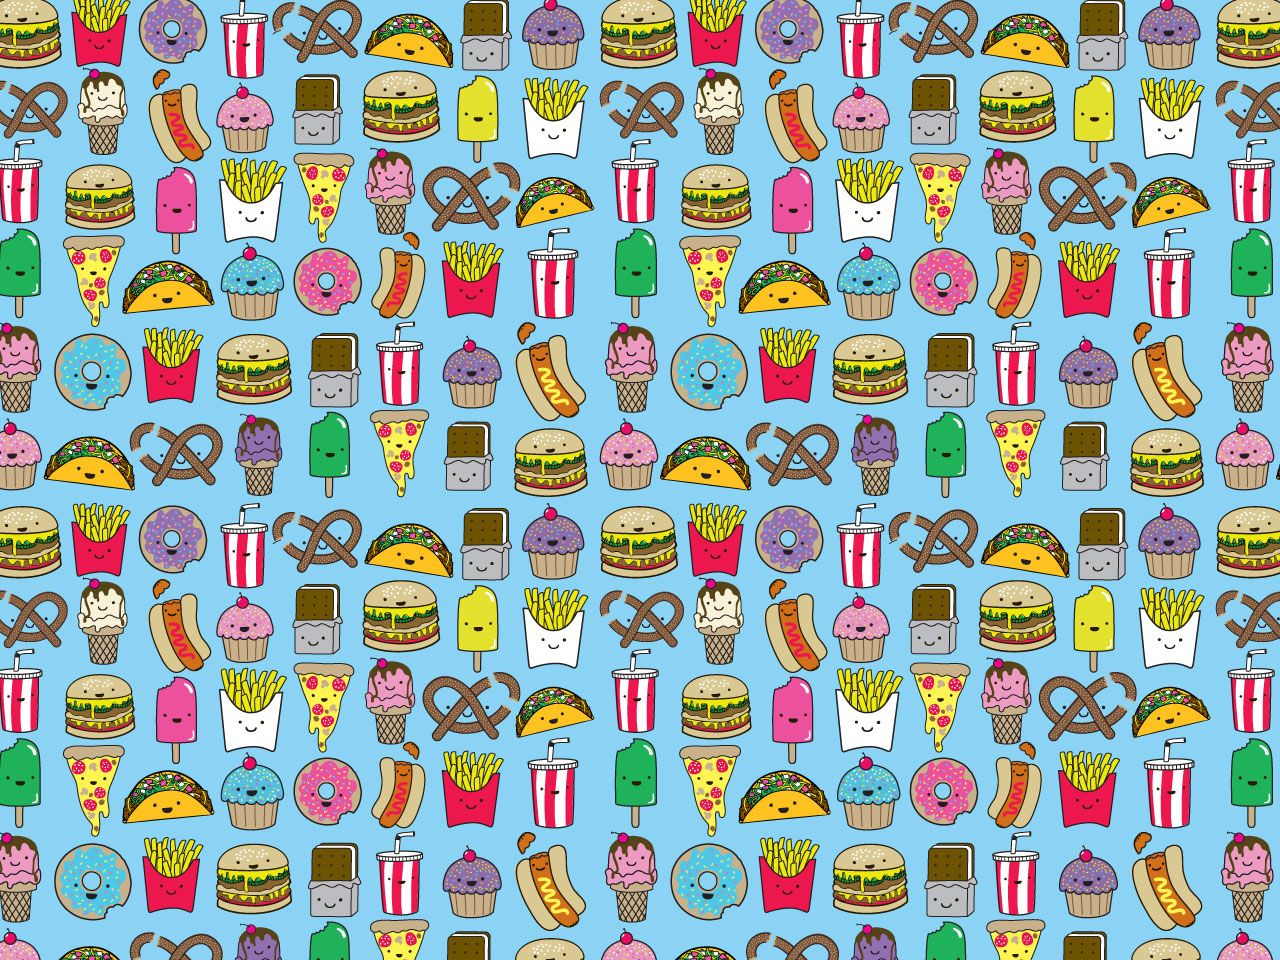 1280x960 cute food backgrounds Gallery (65+ images)